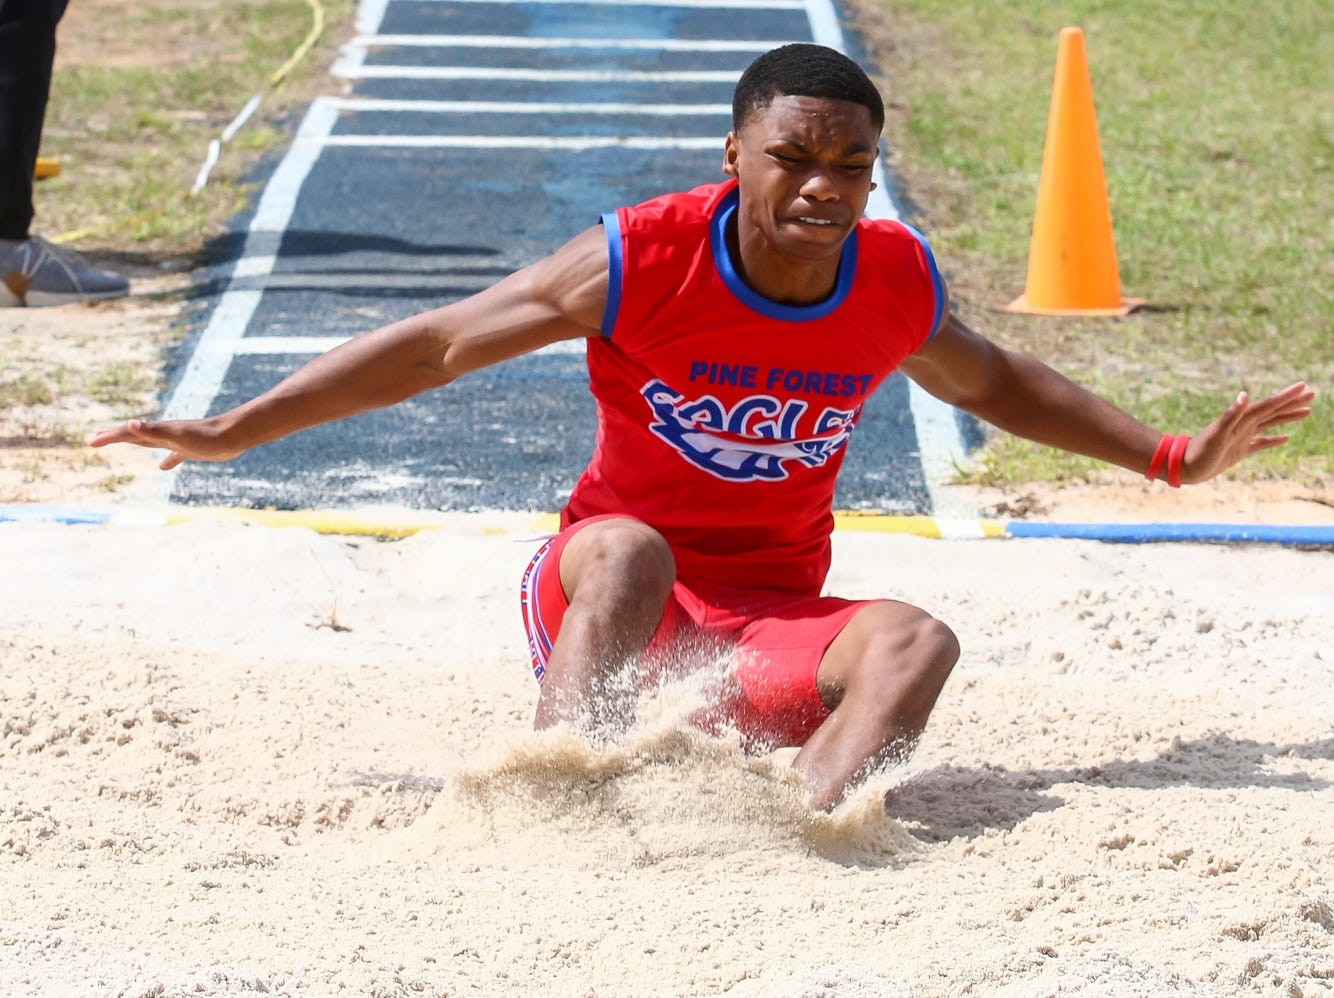 Pine Forest's Rondale Weaden competes in the long jump on Saturday, March 9, 2019, during the Aggie Invitational at Washington High School.